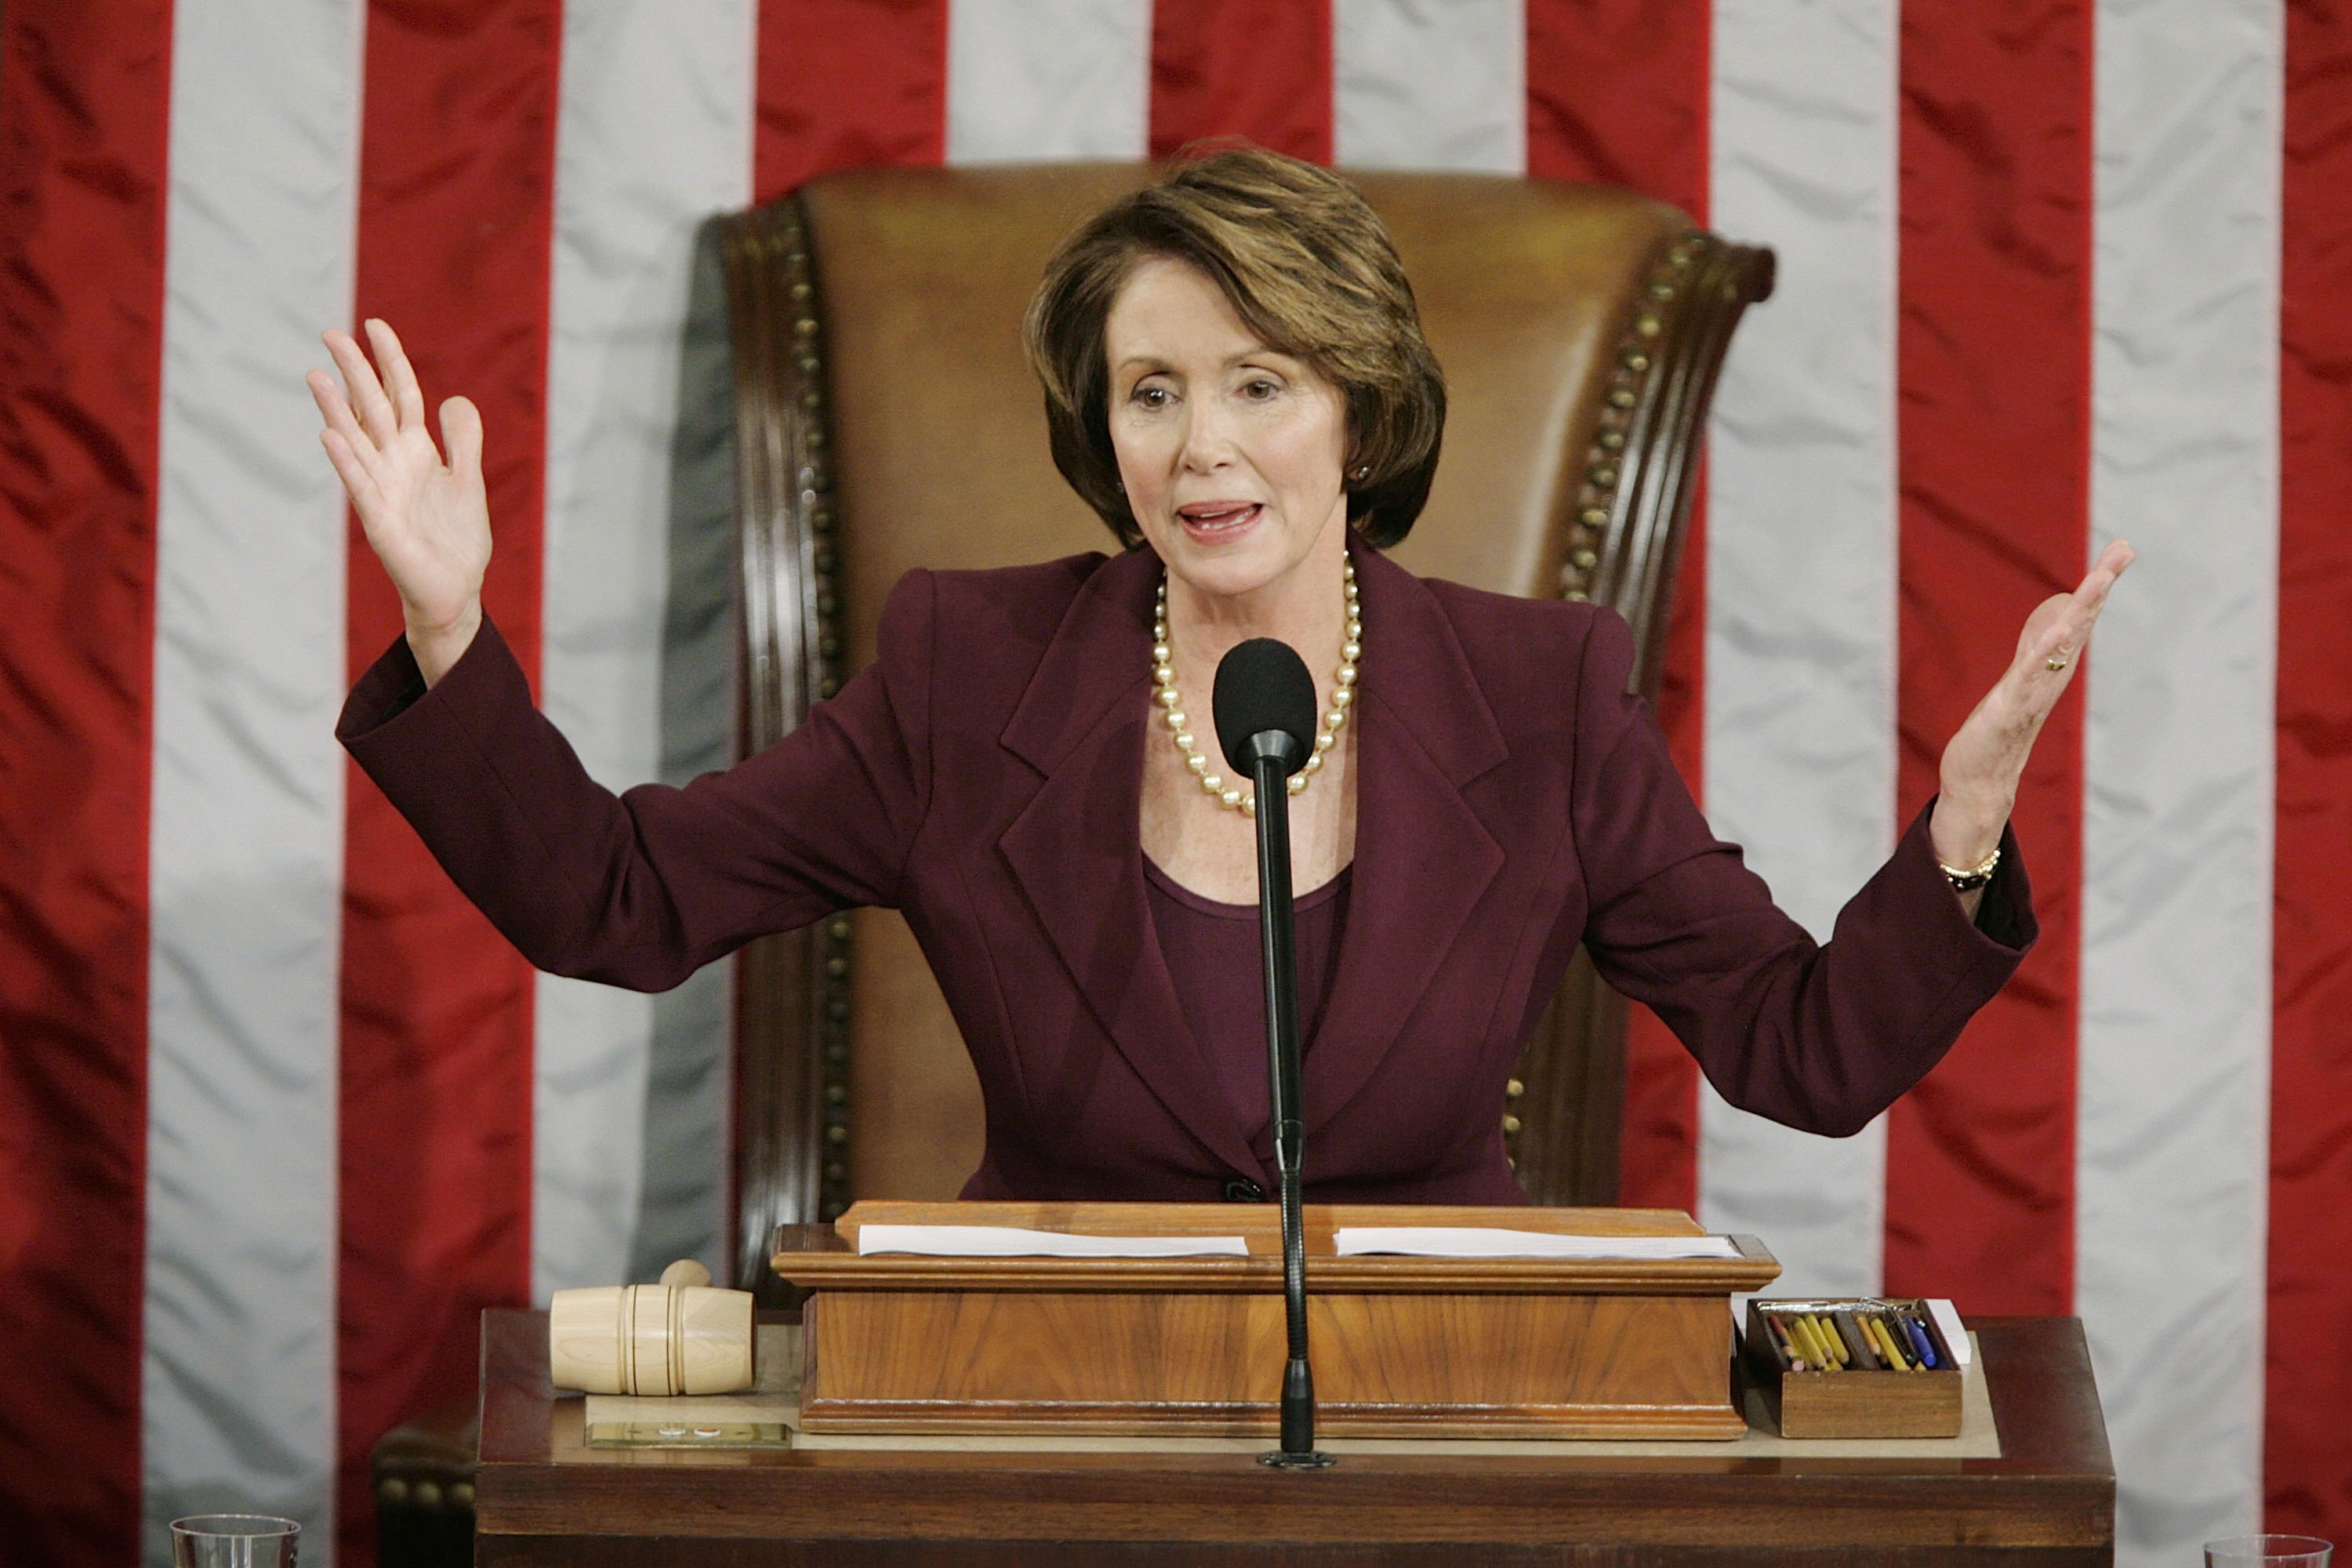 Speaker of the House Nancy Pelosi (D-CA) addresses the House of Representatives after being elected as the first woman Speaker at a swearing in ceremony for the 110th Congress in the House Chamber of the U.S. Capitol January 4, 2007 in Washington, DC. (Photo by Chip Somodevilla/Getty Images)